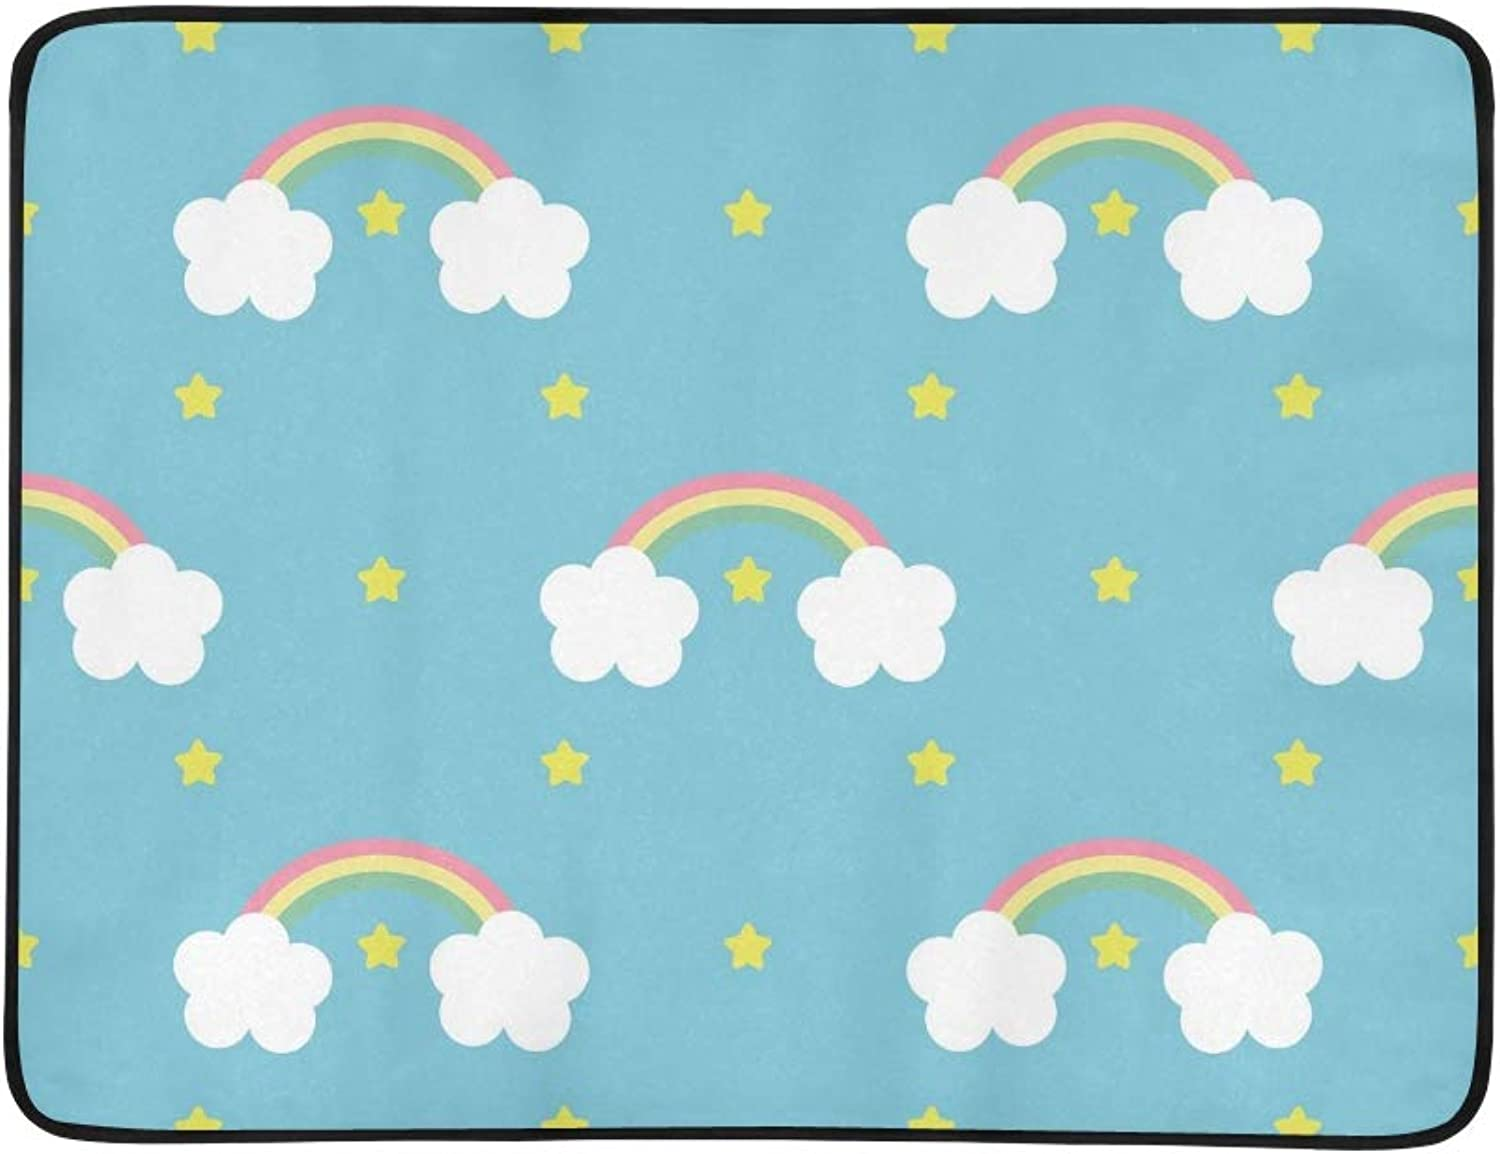 Rainbow Stars On blueee Portable and Foldable Blanket Mat 60x78 Inch Handy Mat for Camping Picnic Beach Indoor Outdoor Travel